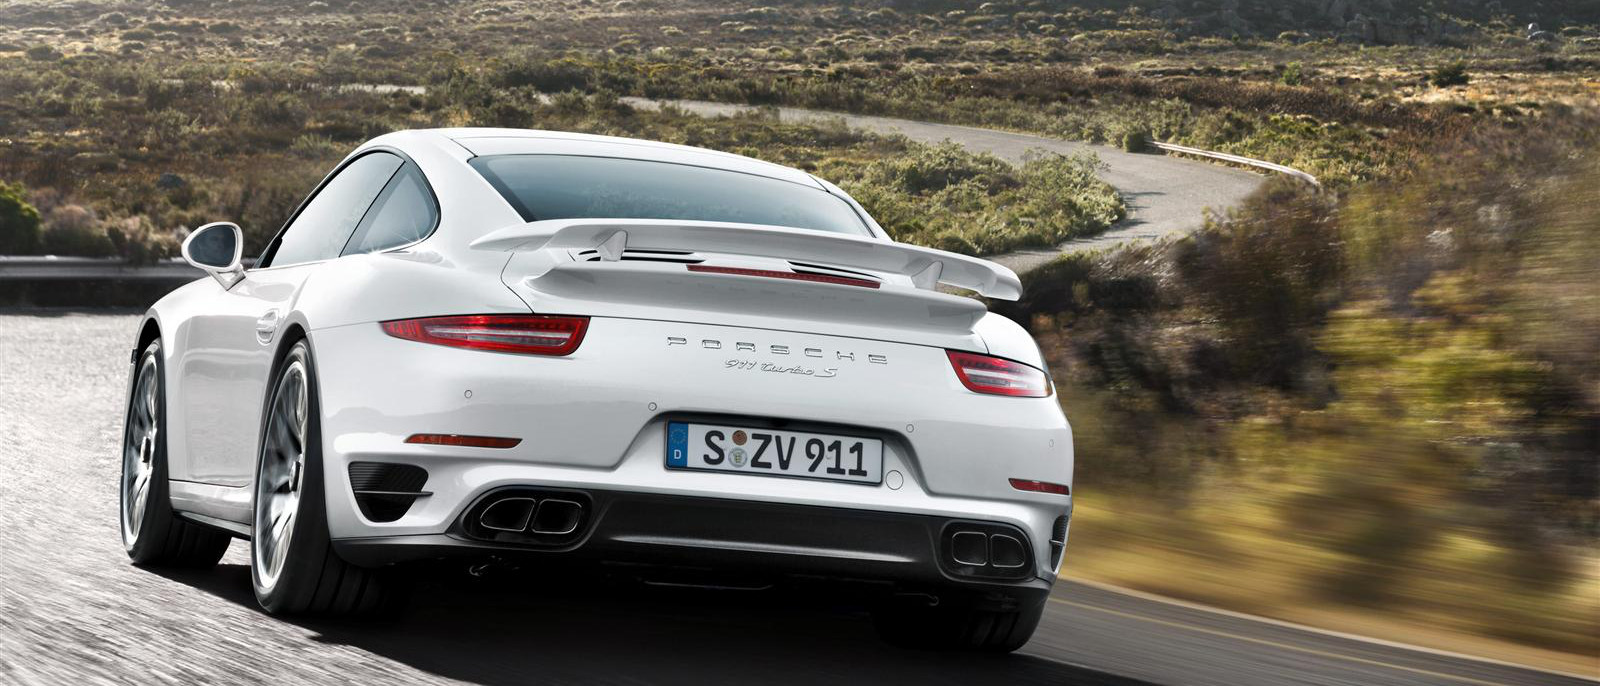 2015 porsche 911 turbo s rear exterior